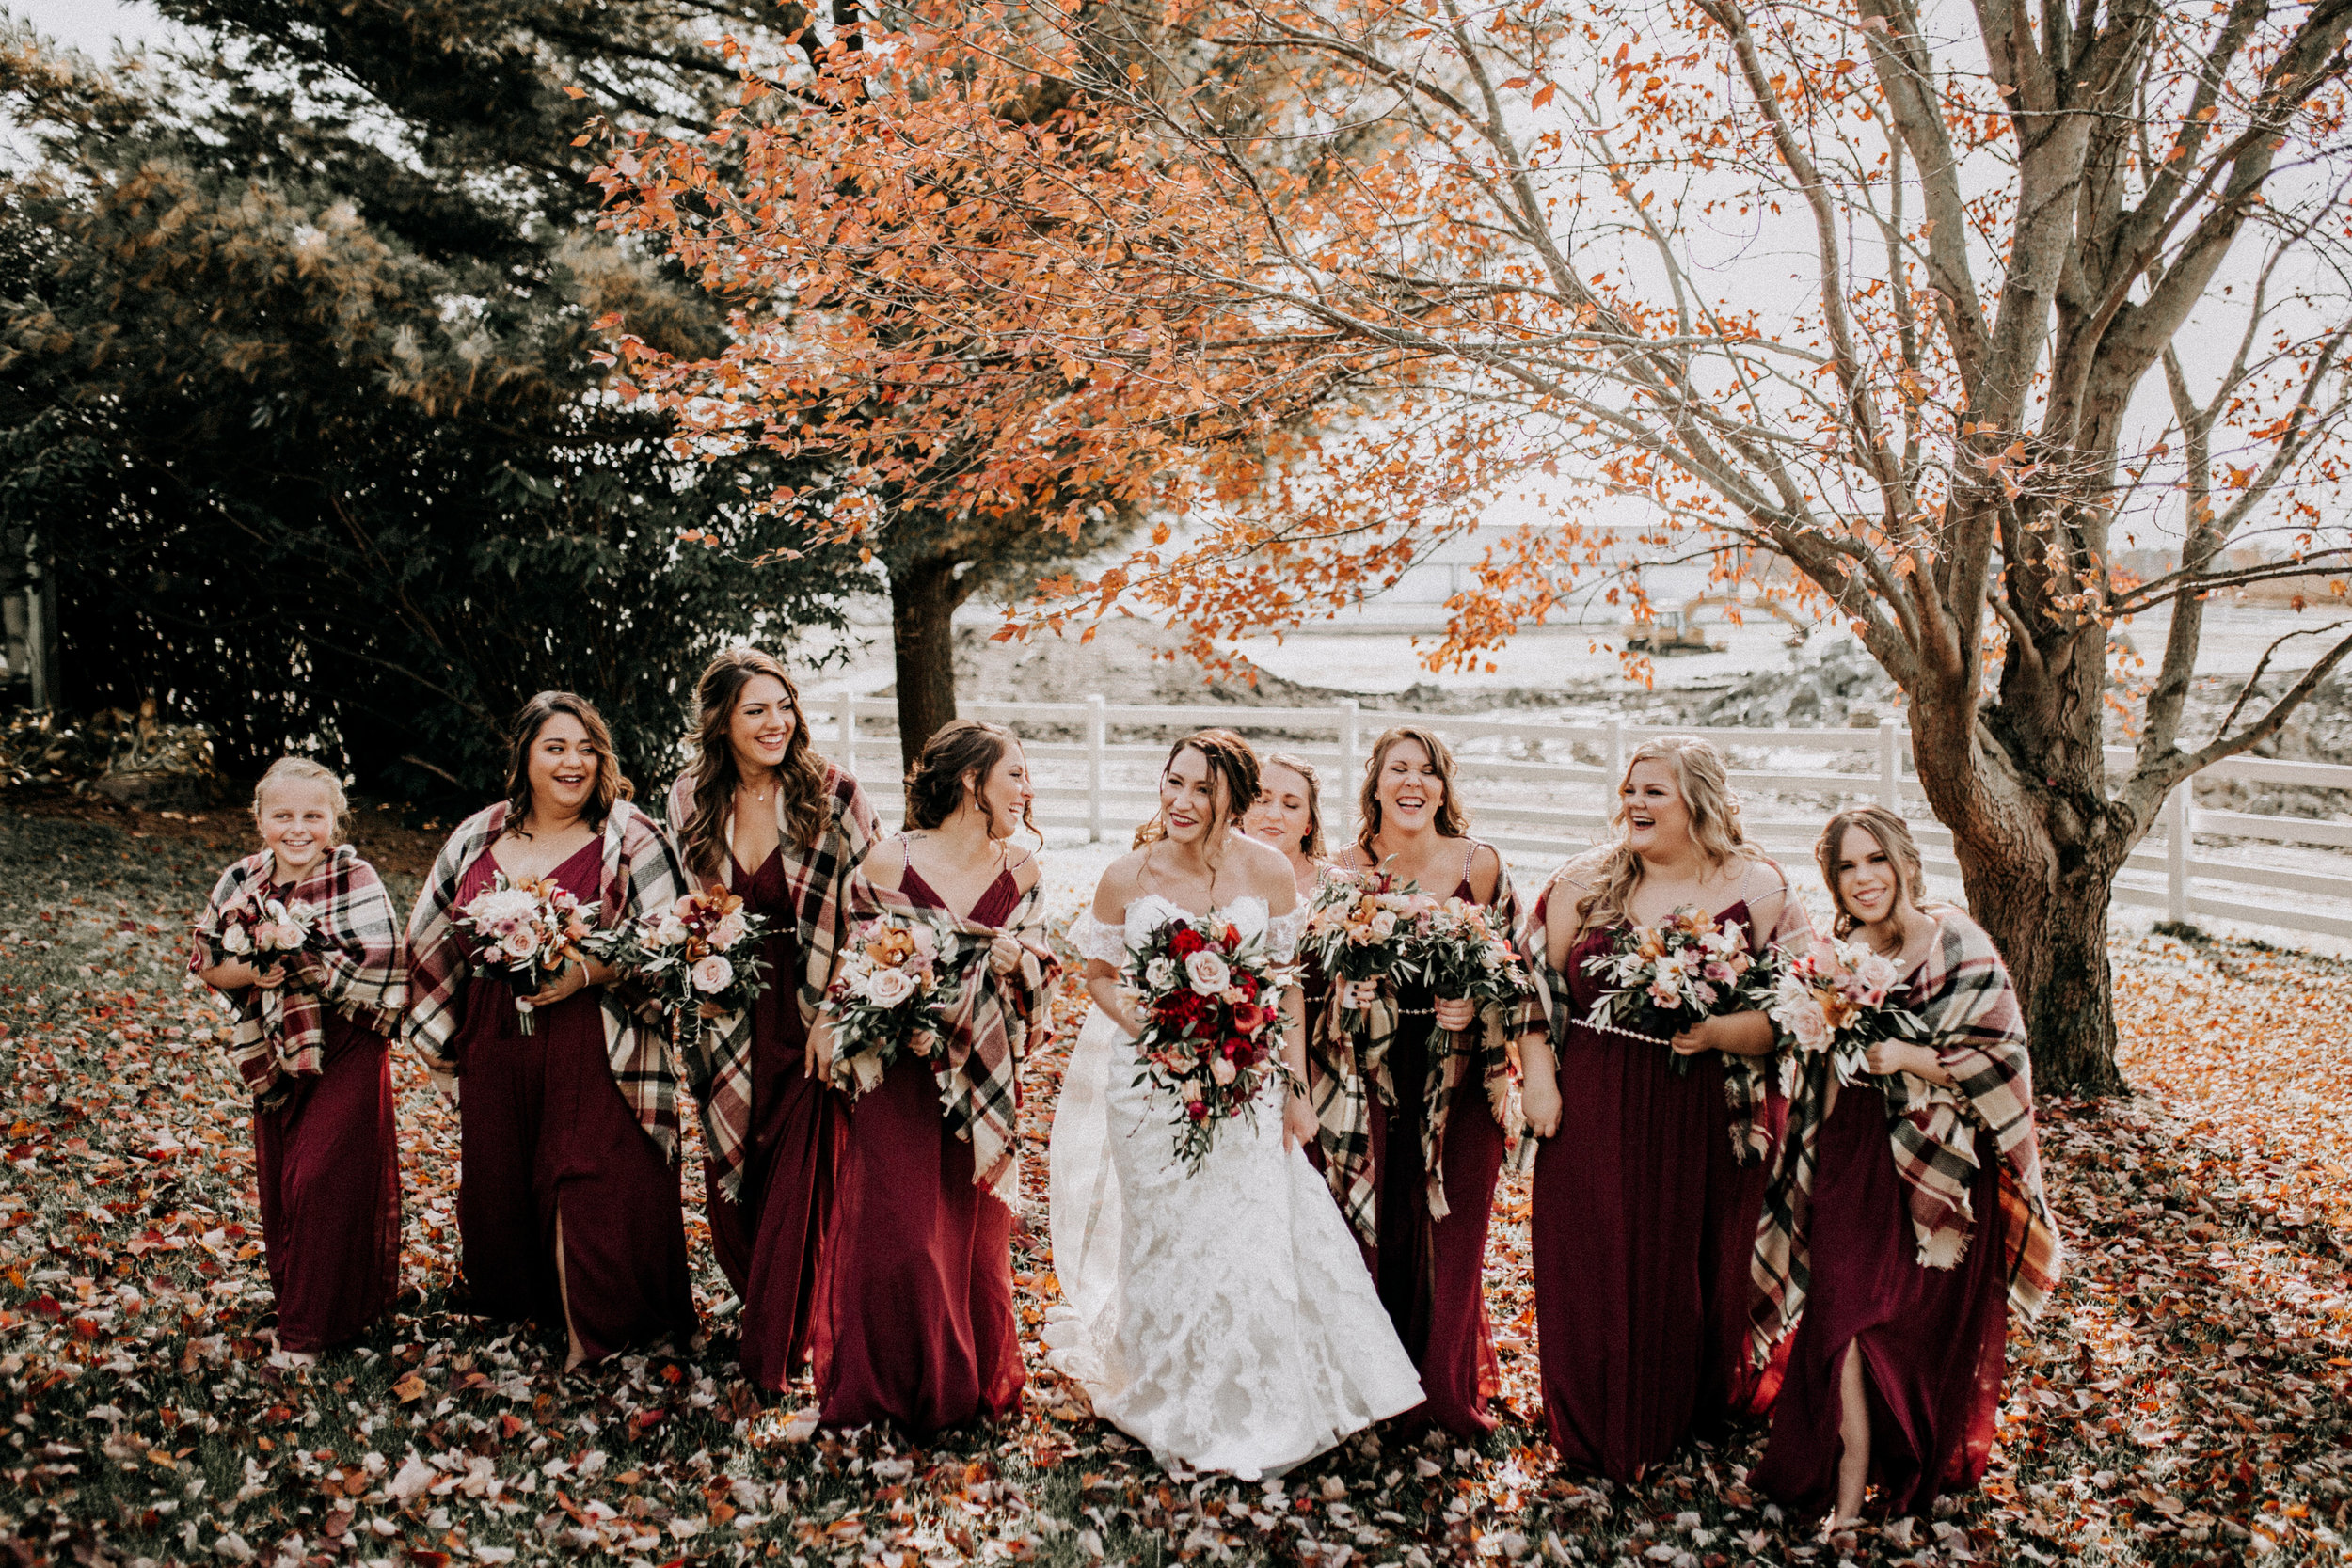 rustic wedding fall colors bridesmaids picture.jpg